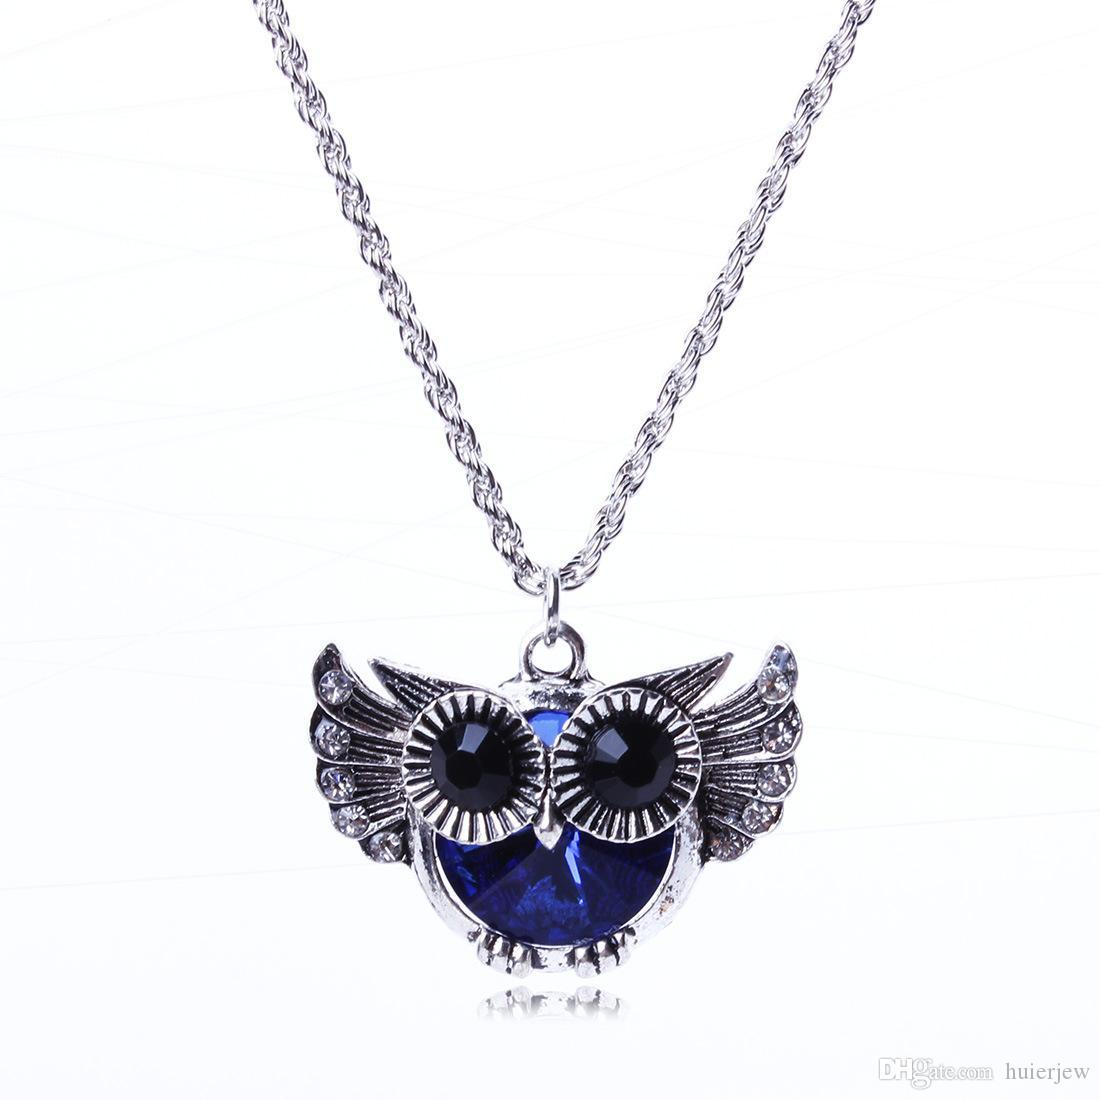 Necklaces Pendant Chain Necklace flying owl blue Beautifully crystal rhinestone bead fashion pendant necklace